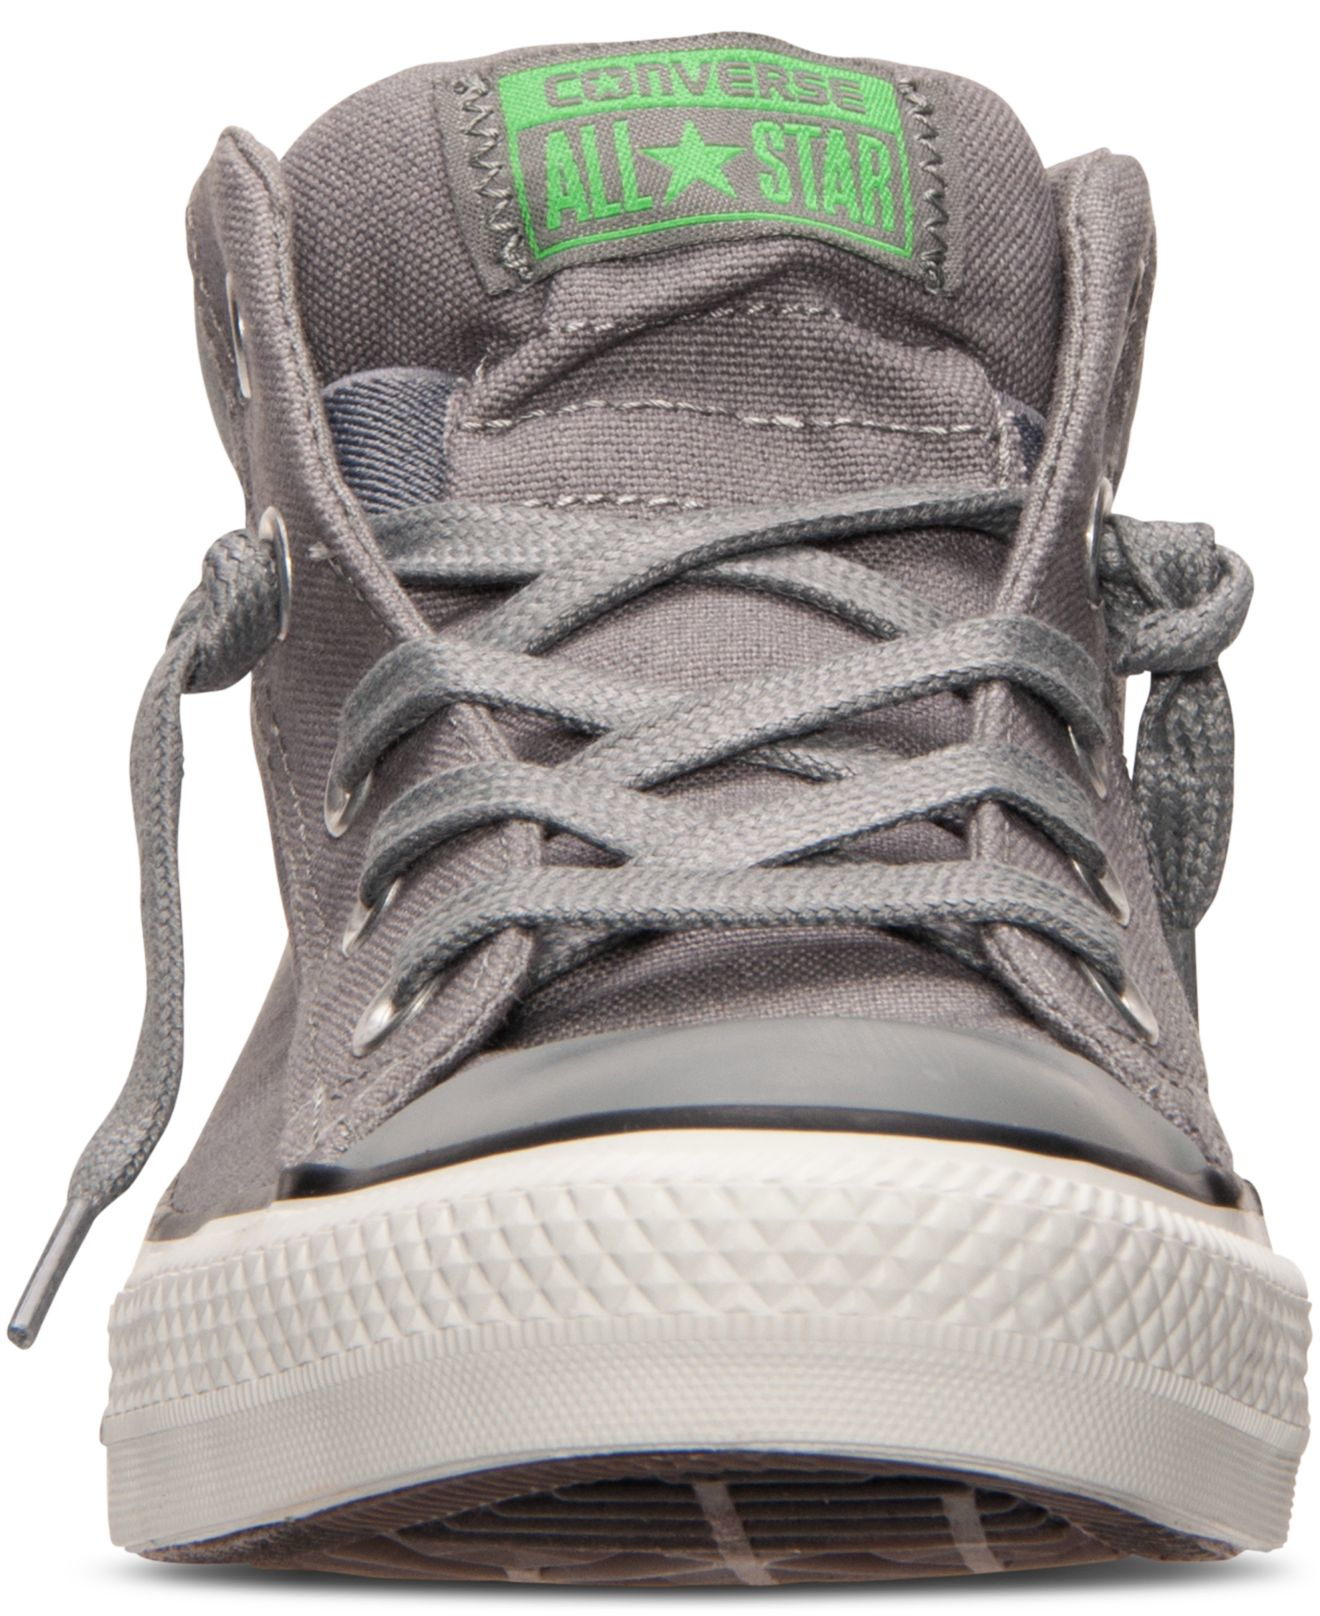 f8b2e5bcaa04 ... new zealand lyst converse mens chuck taylor street mid casual sneakers  from finish line in gray